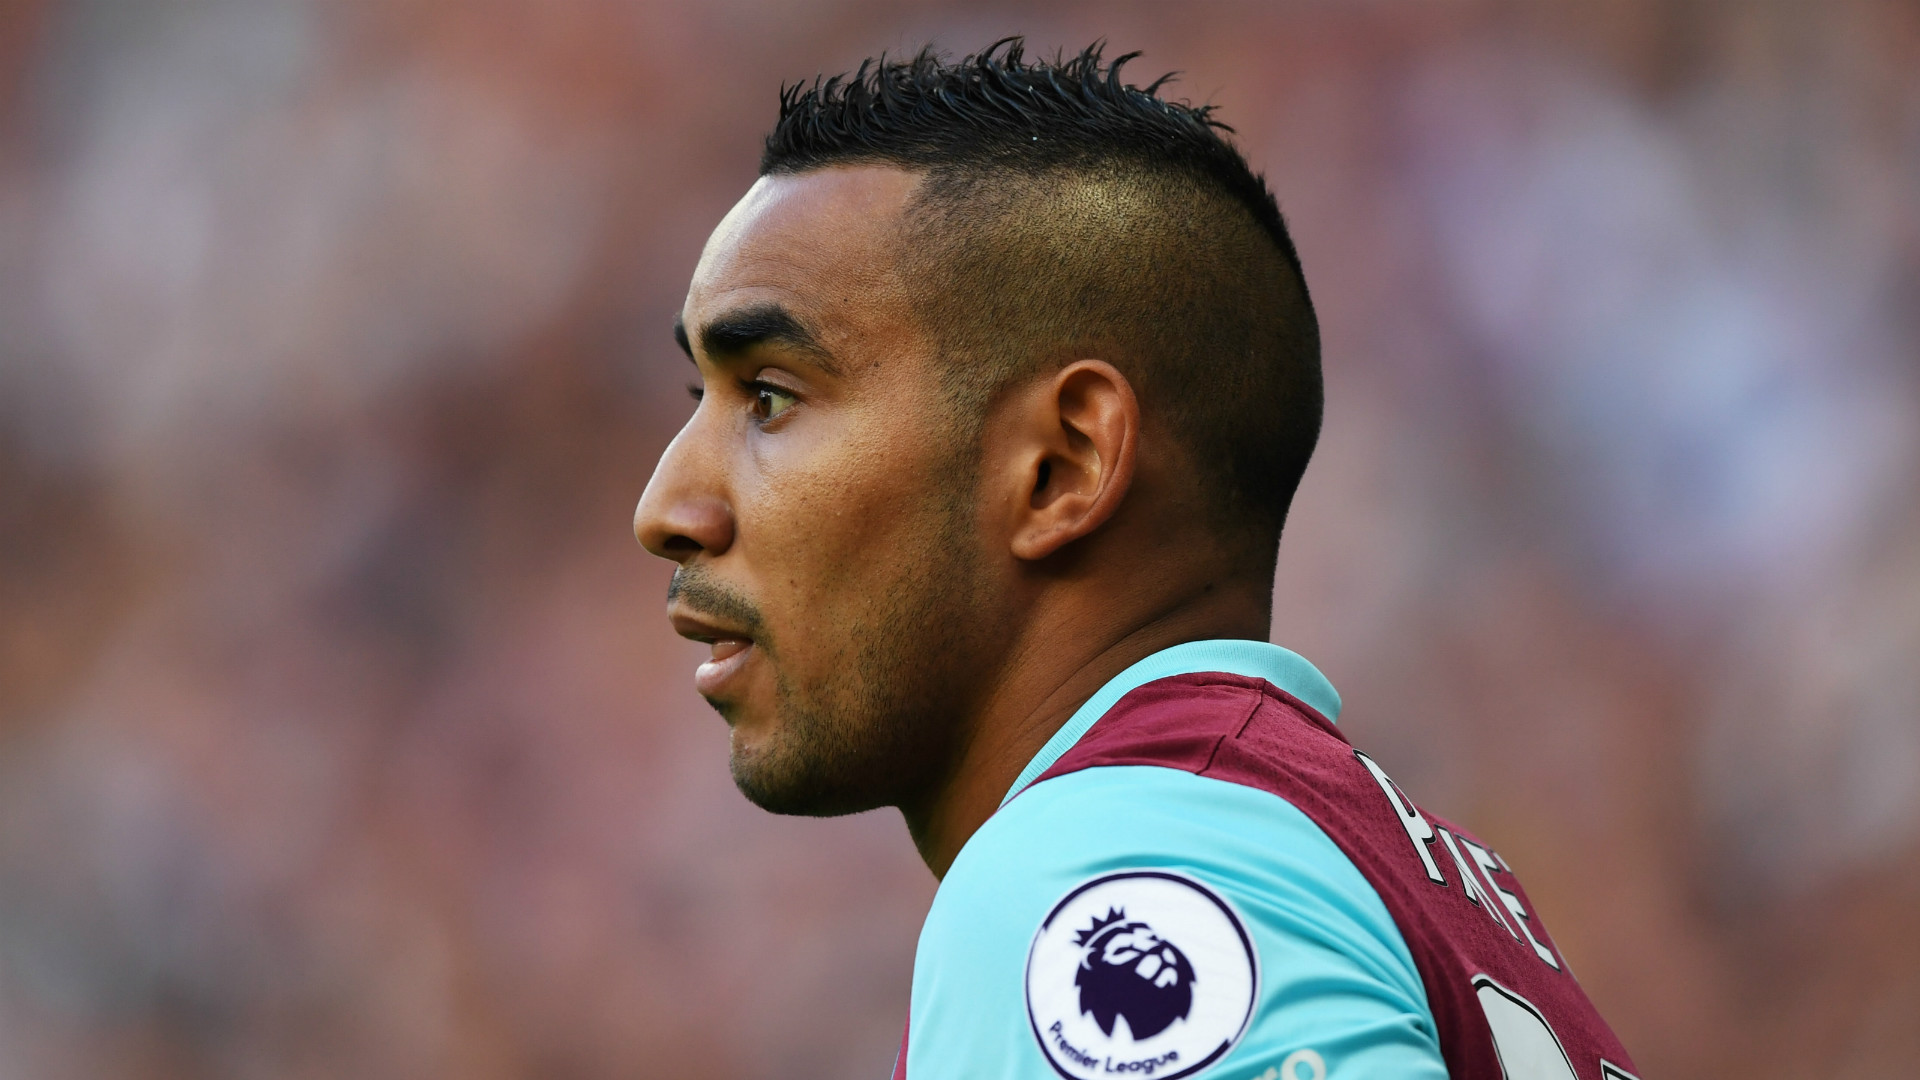 Dimitri Payet stunner saves draw for West Ham vs. Middlesbrough